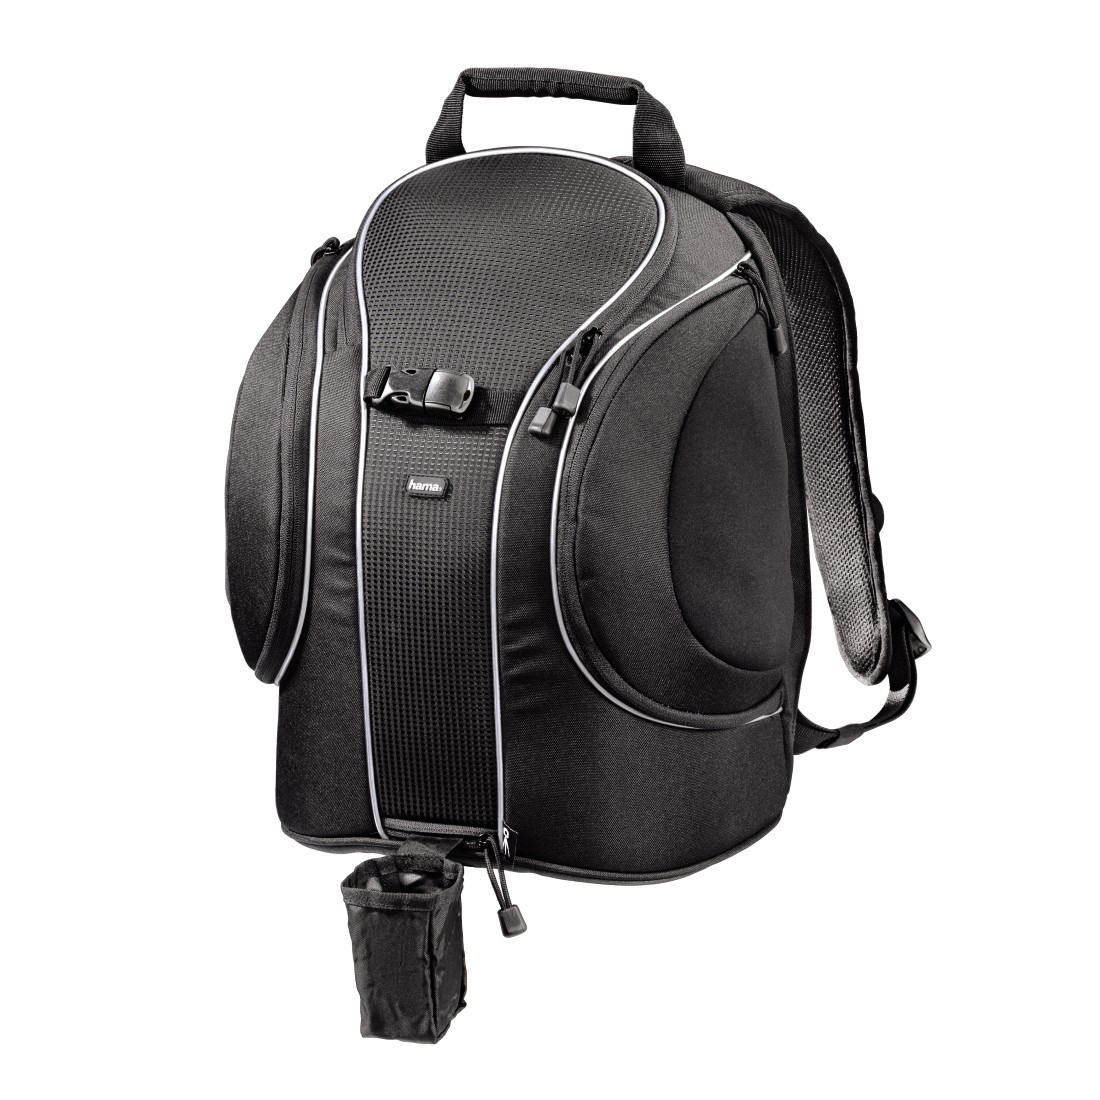 abx2 High-Res Image 2 - Hama, Daytour Camera Backpack, 180, black